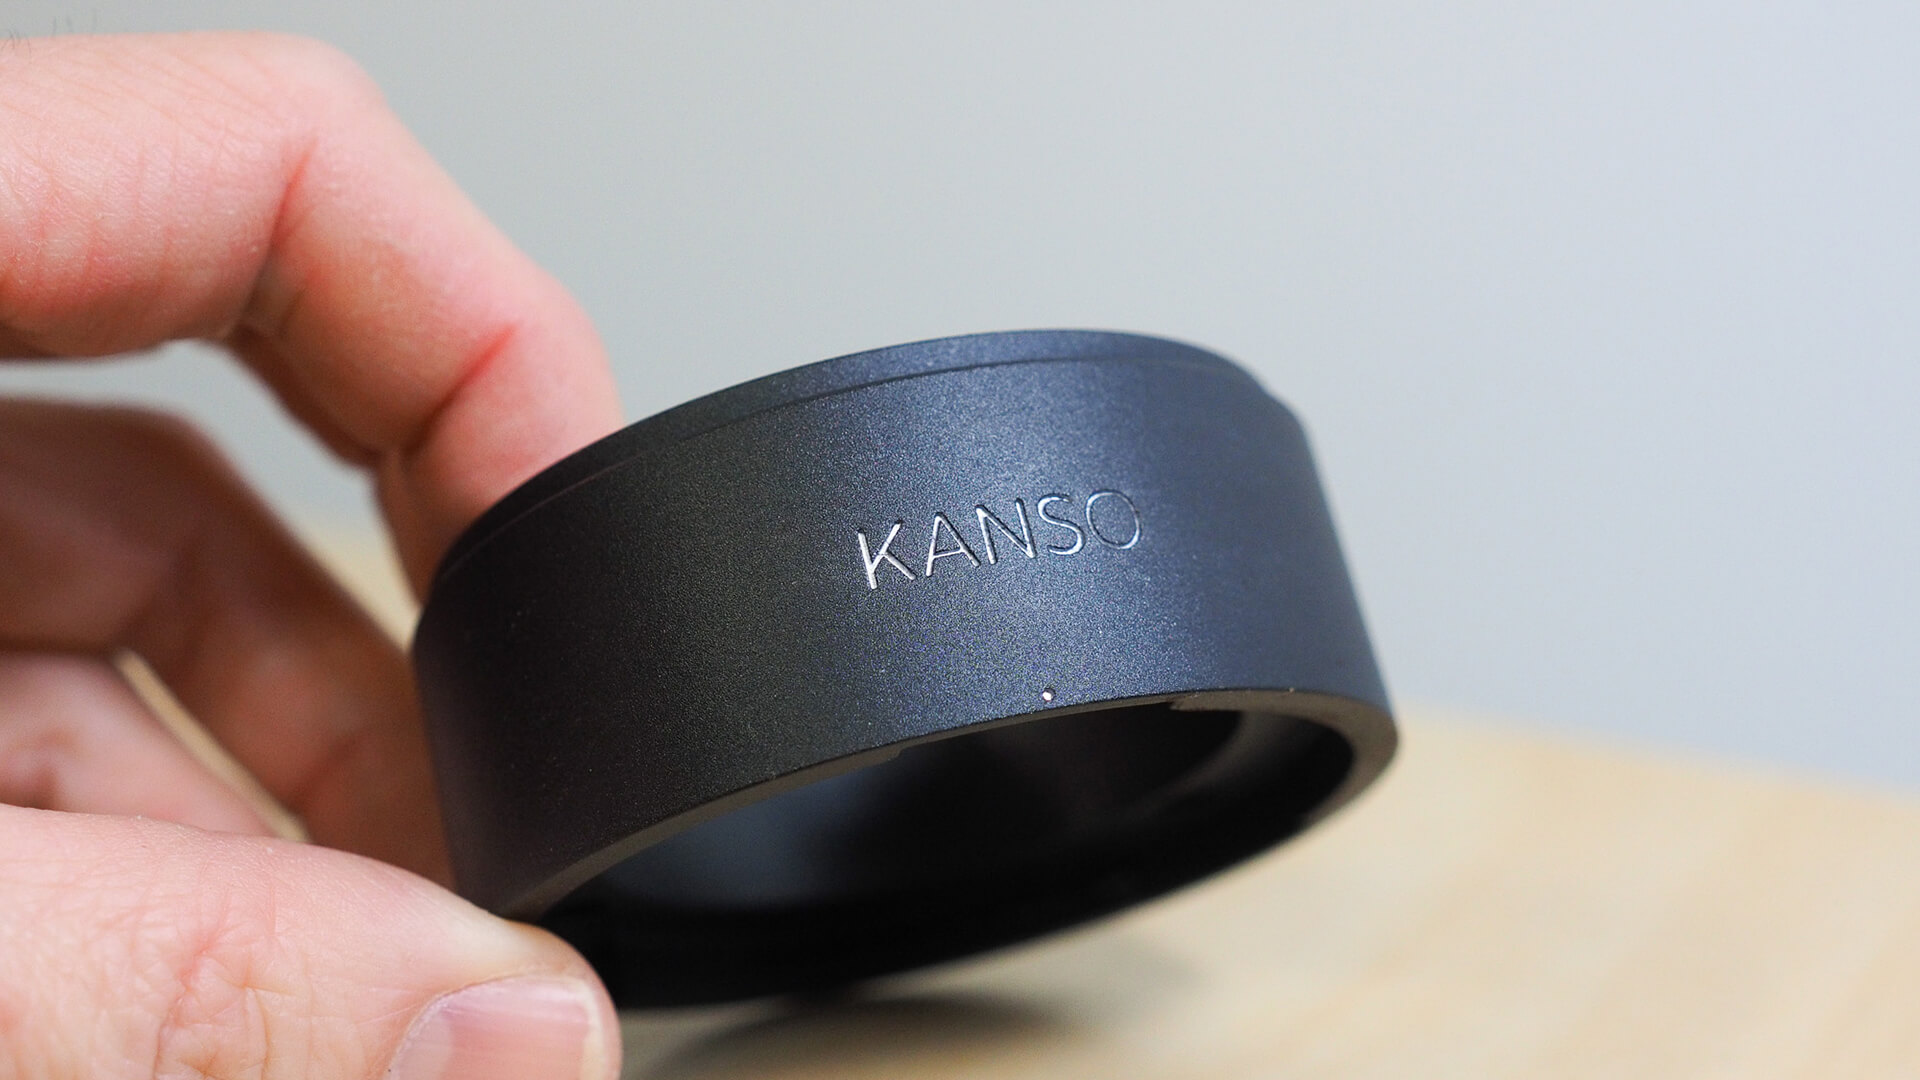 """A close up shot of someone holding up a prototype manufactured part of the HIKU hand coffee grinder, with the """"KANSO"""" logo prominently debossed on the surface."""